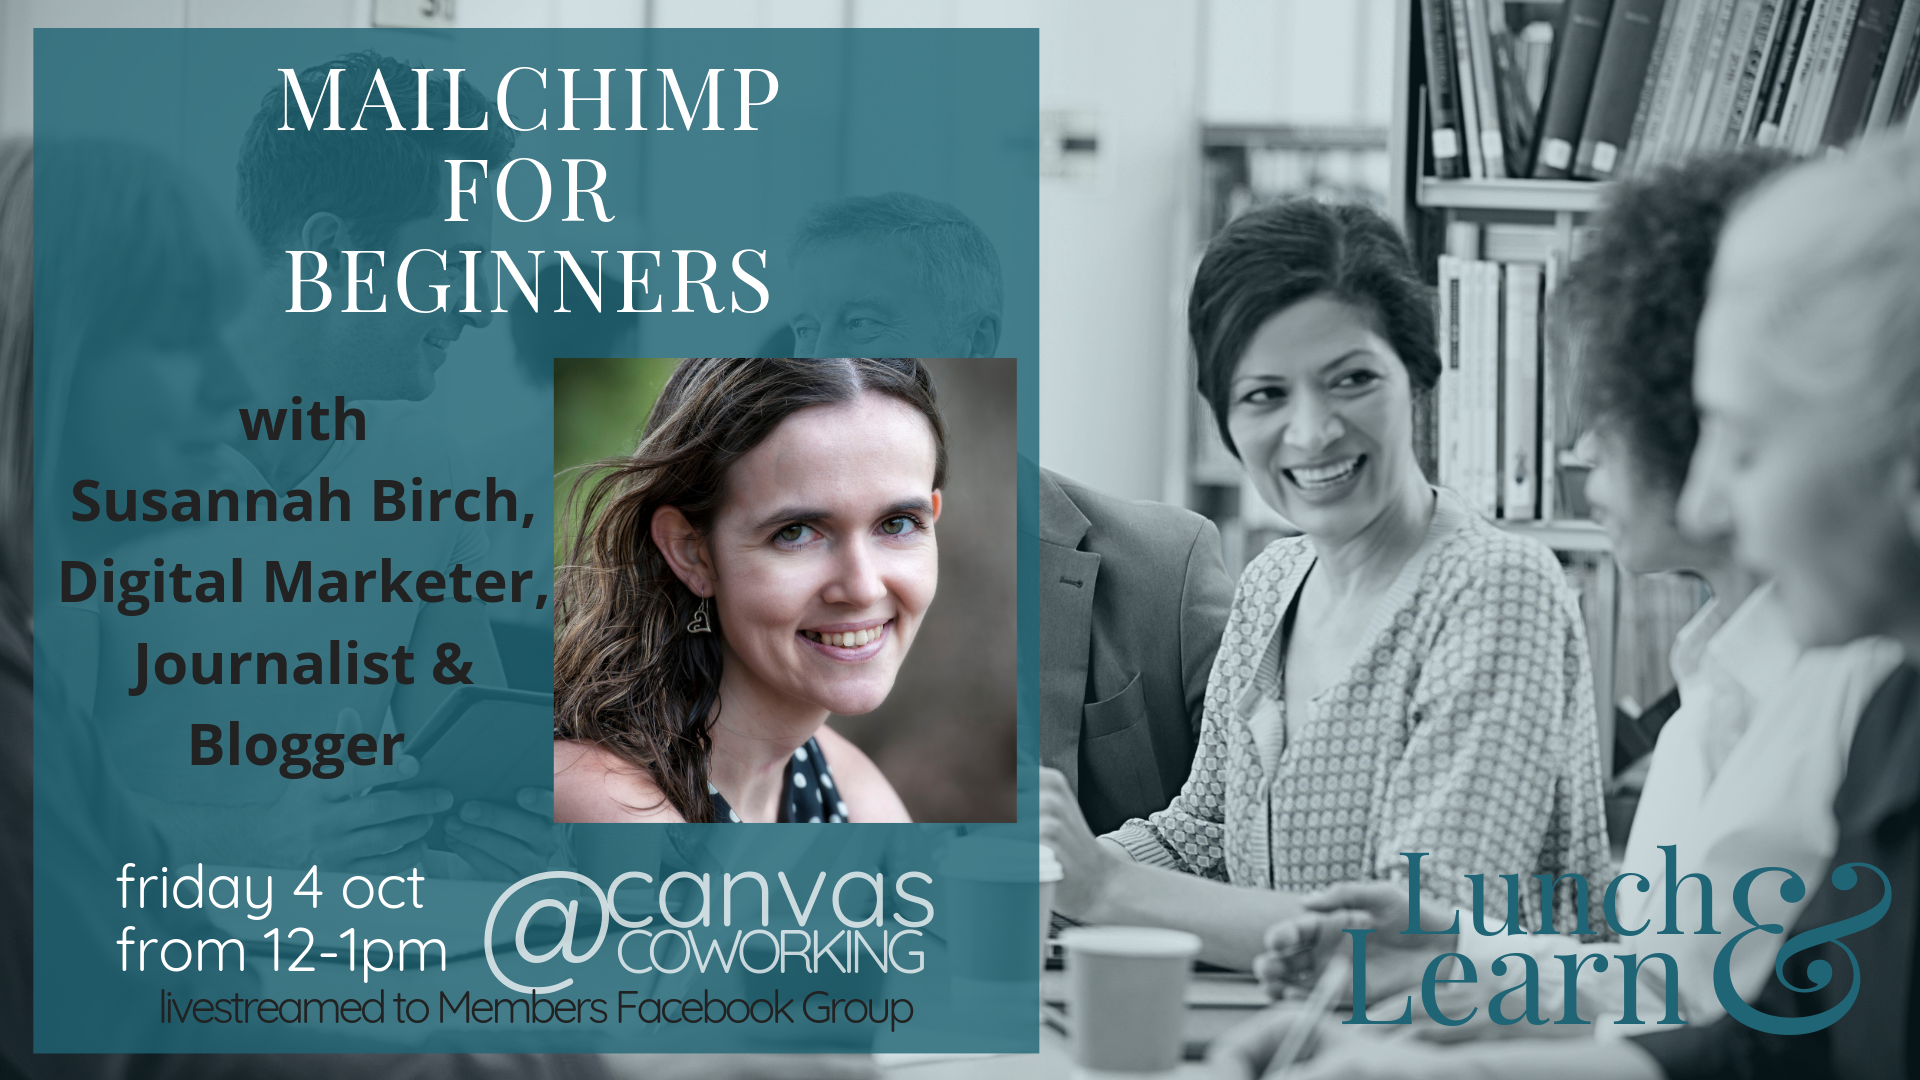 Lunch and Learn Mailchimp for Beginners at Canvas Coworking on 4 October 2019 from 12pm to 1pm